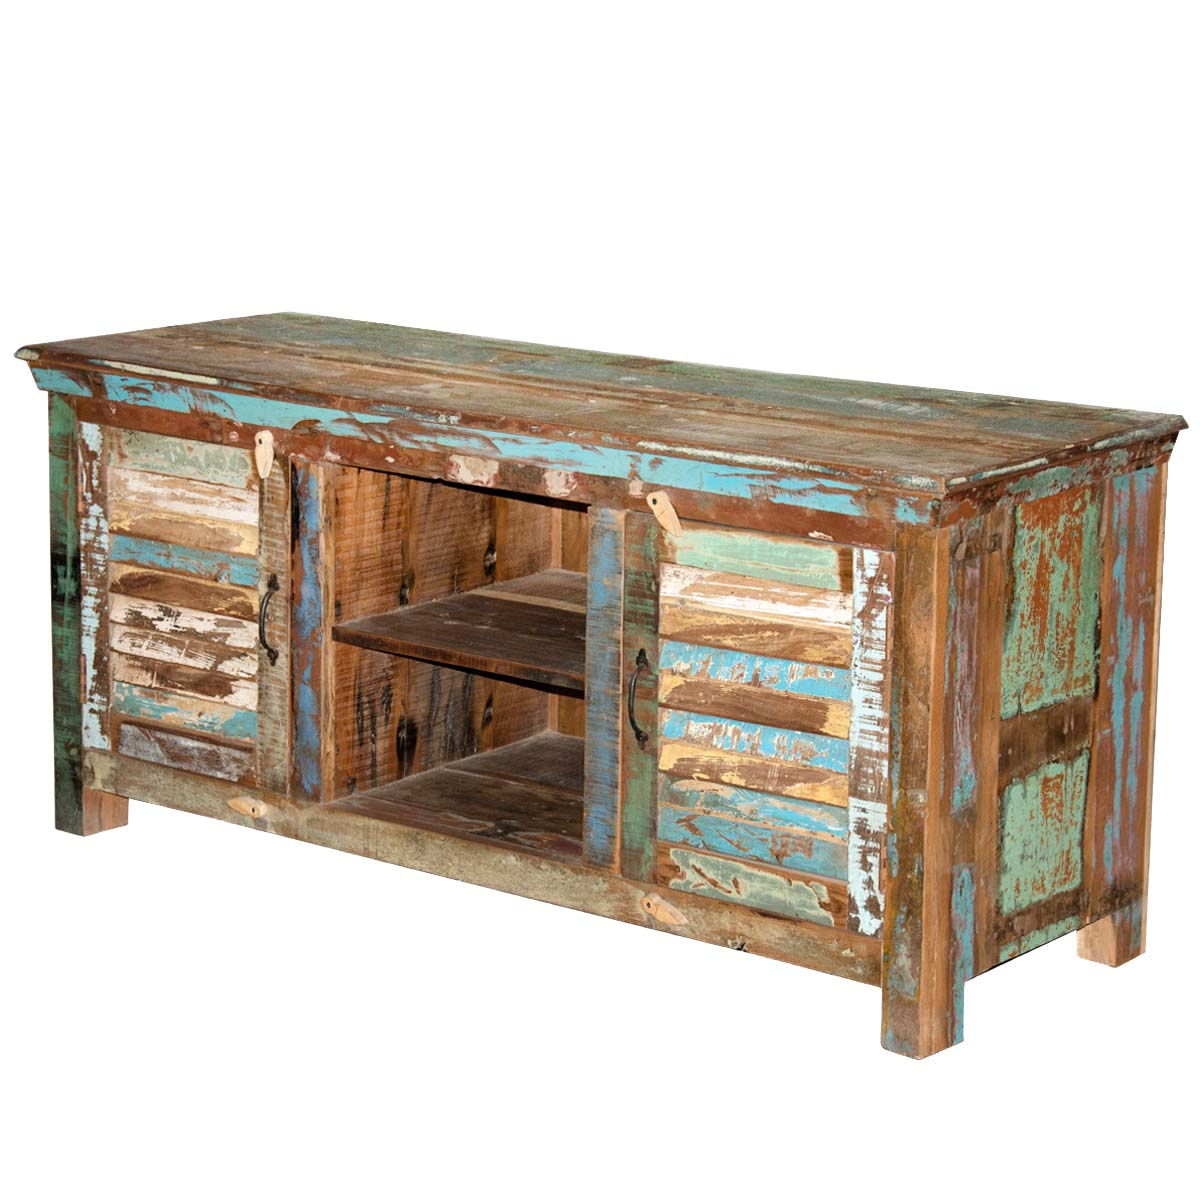 Famous Fenwick Rustic Reclaimed Reclaimed Wood Tv Cabinet Tall Bathroom With Regard To Rustic Wood Tv Cabinets (Gallery 4 of 20)